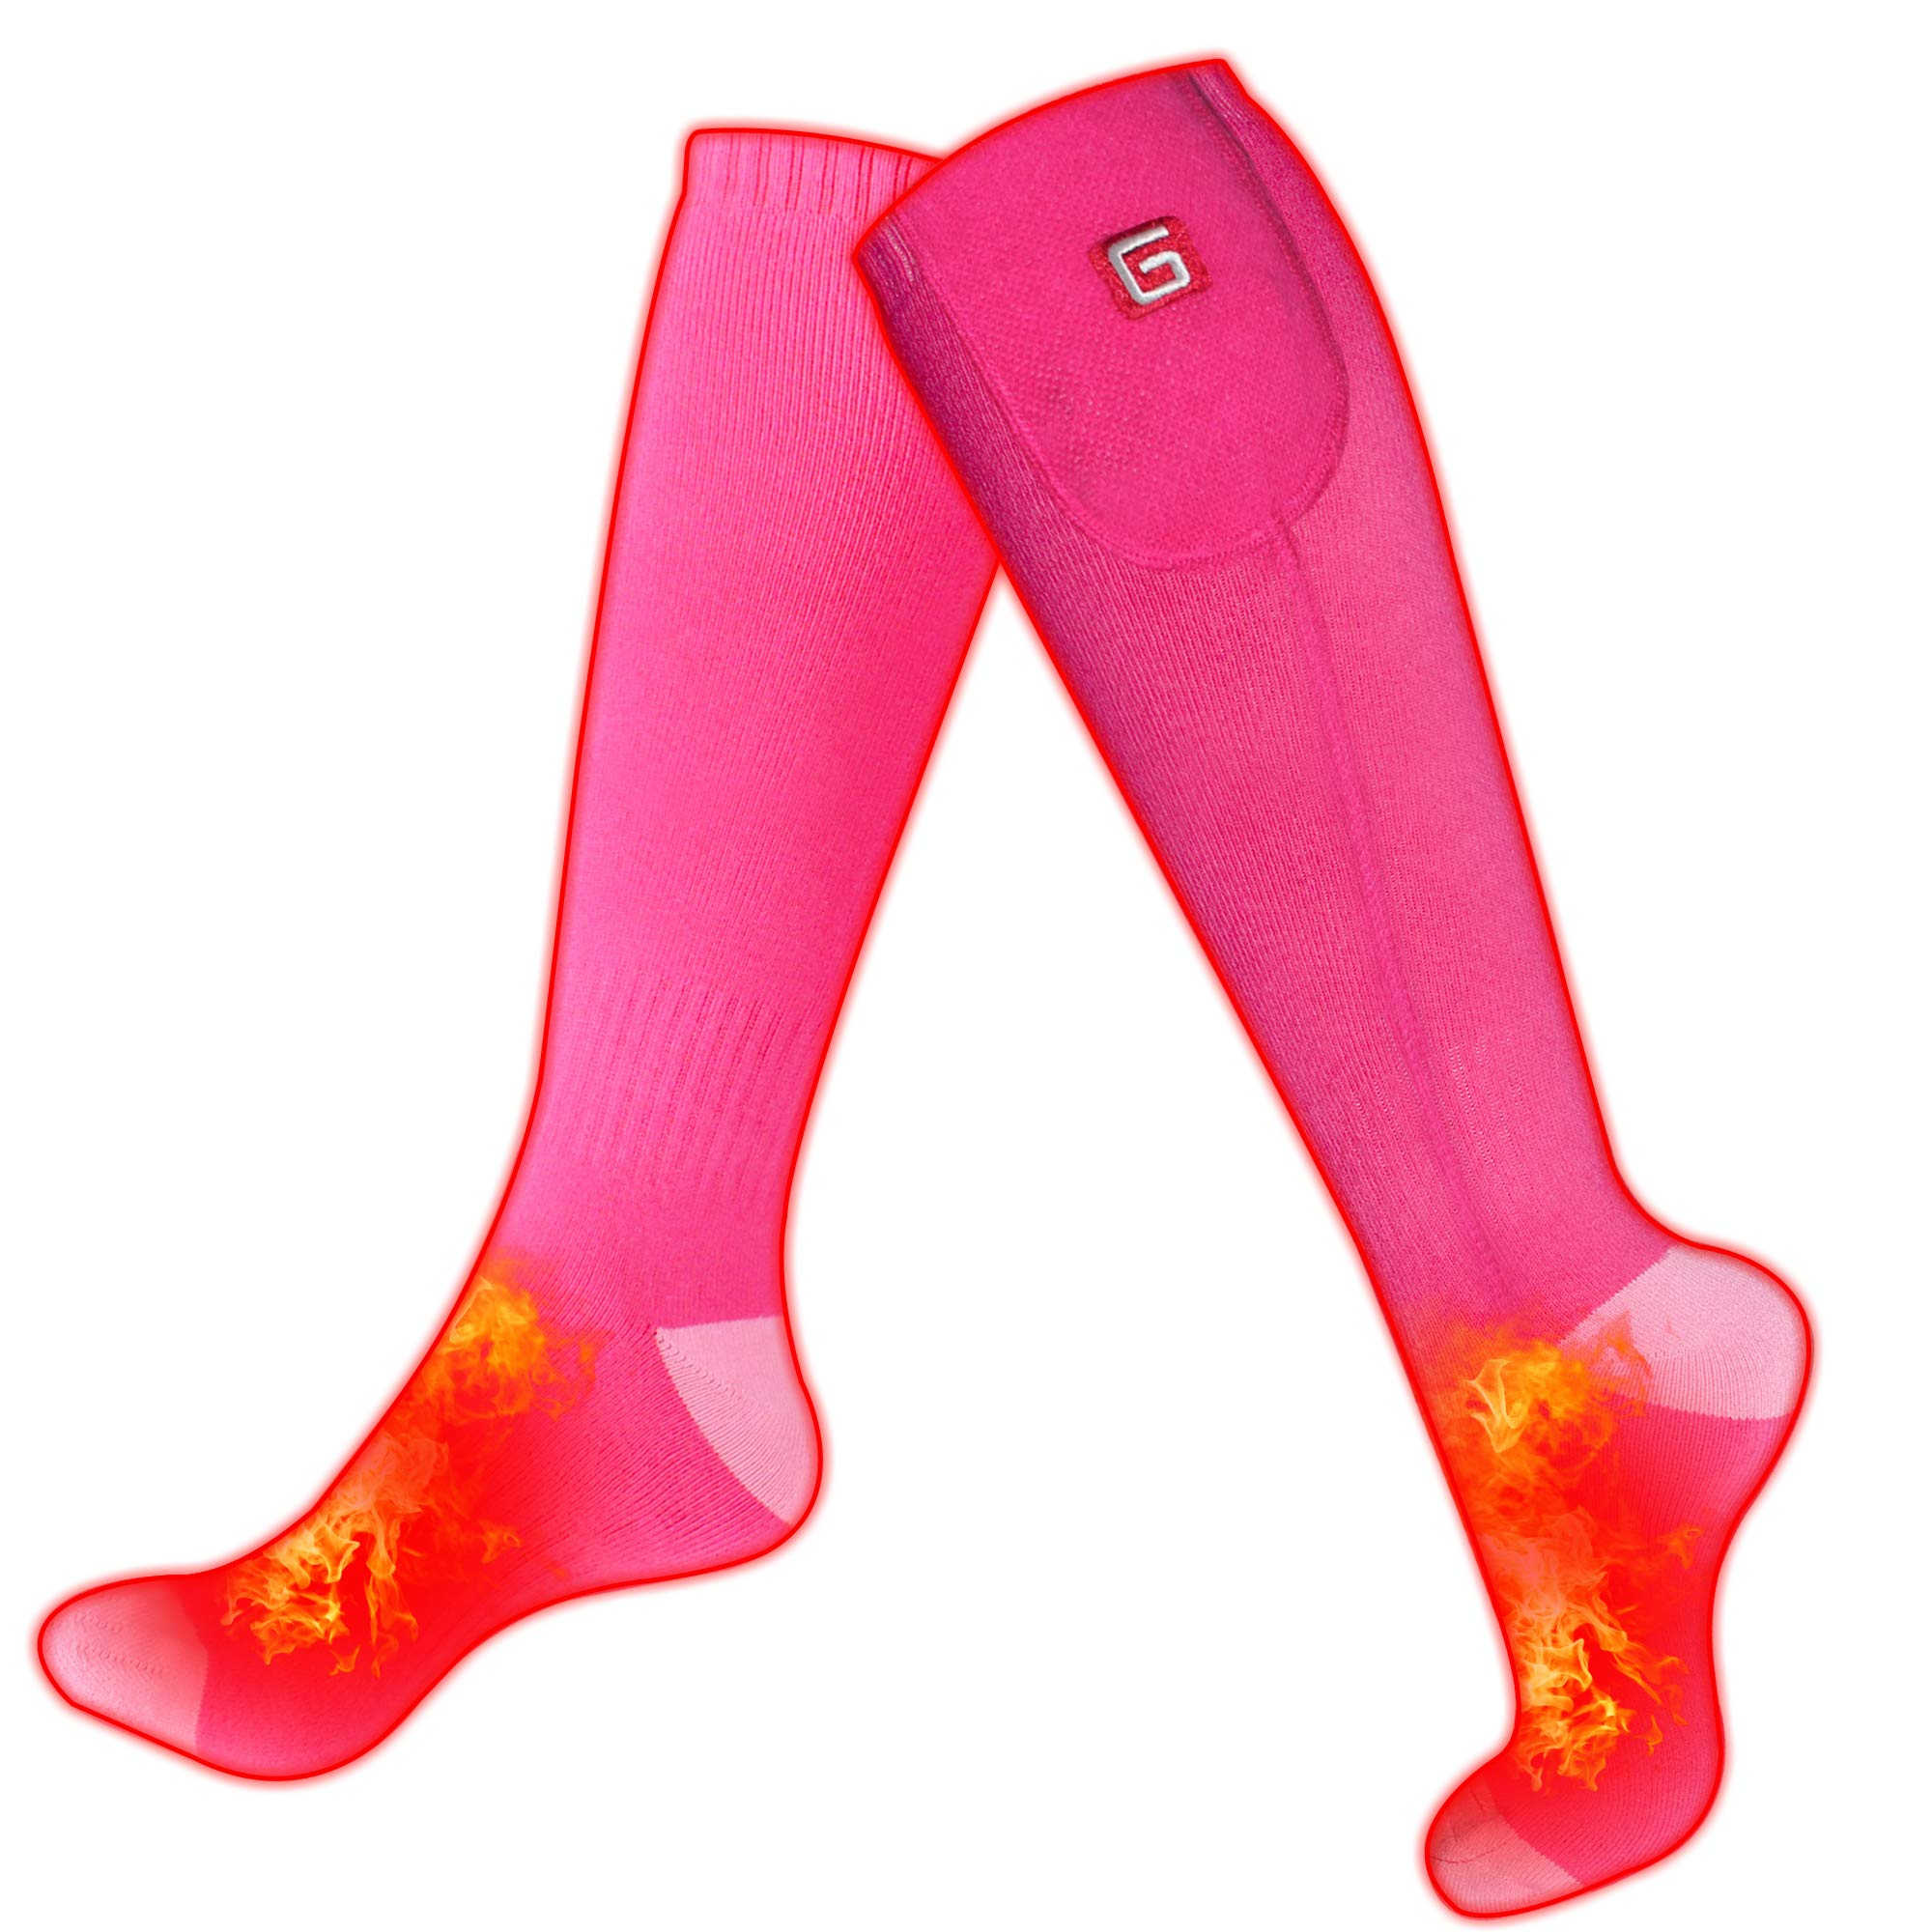 IFWATER Electric Heated Socks for Women Men, Rechargeable Electric Socks Battery Heated Socks Foot Warmer for Chronically Cold Foot, Skiing Hiking Warm Socks (Pink, M) by IFWATER